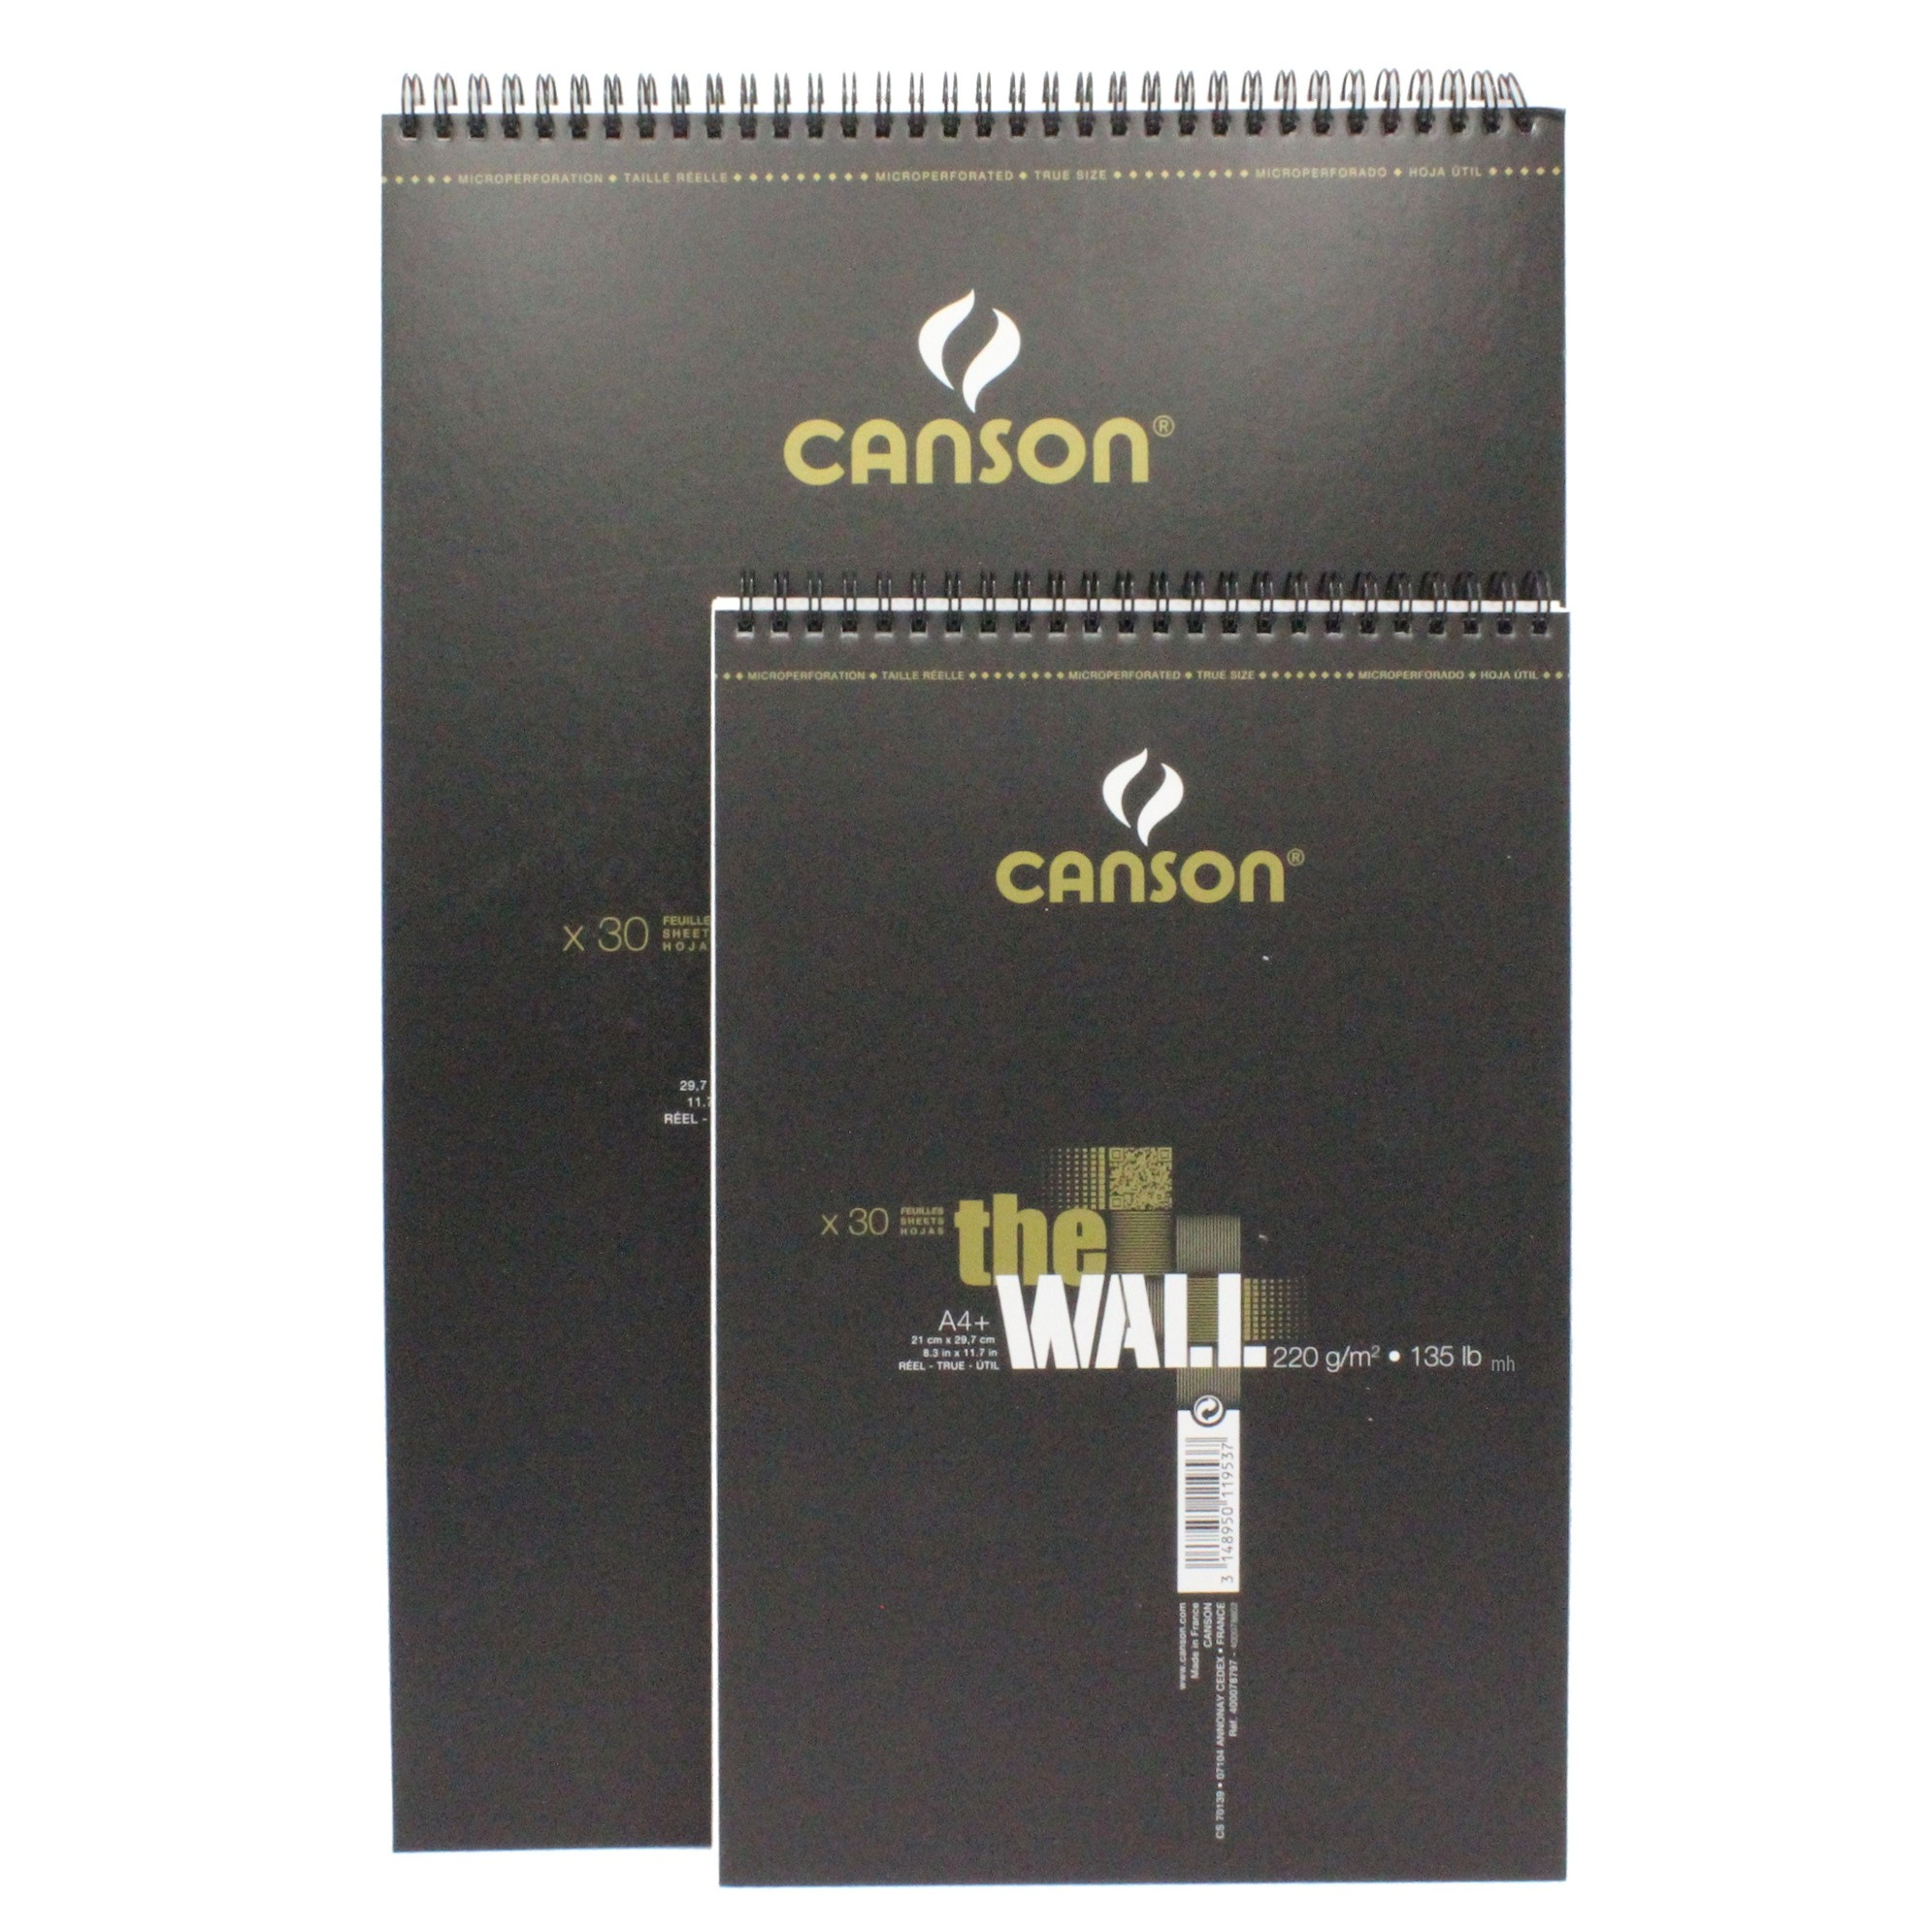 Canson the Wall opaque heavyweight bleedproof paper A4 + or A3 +